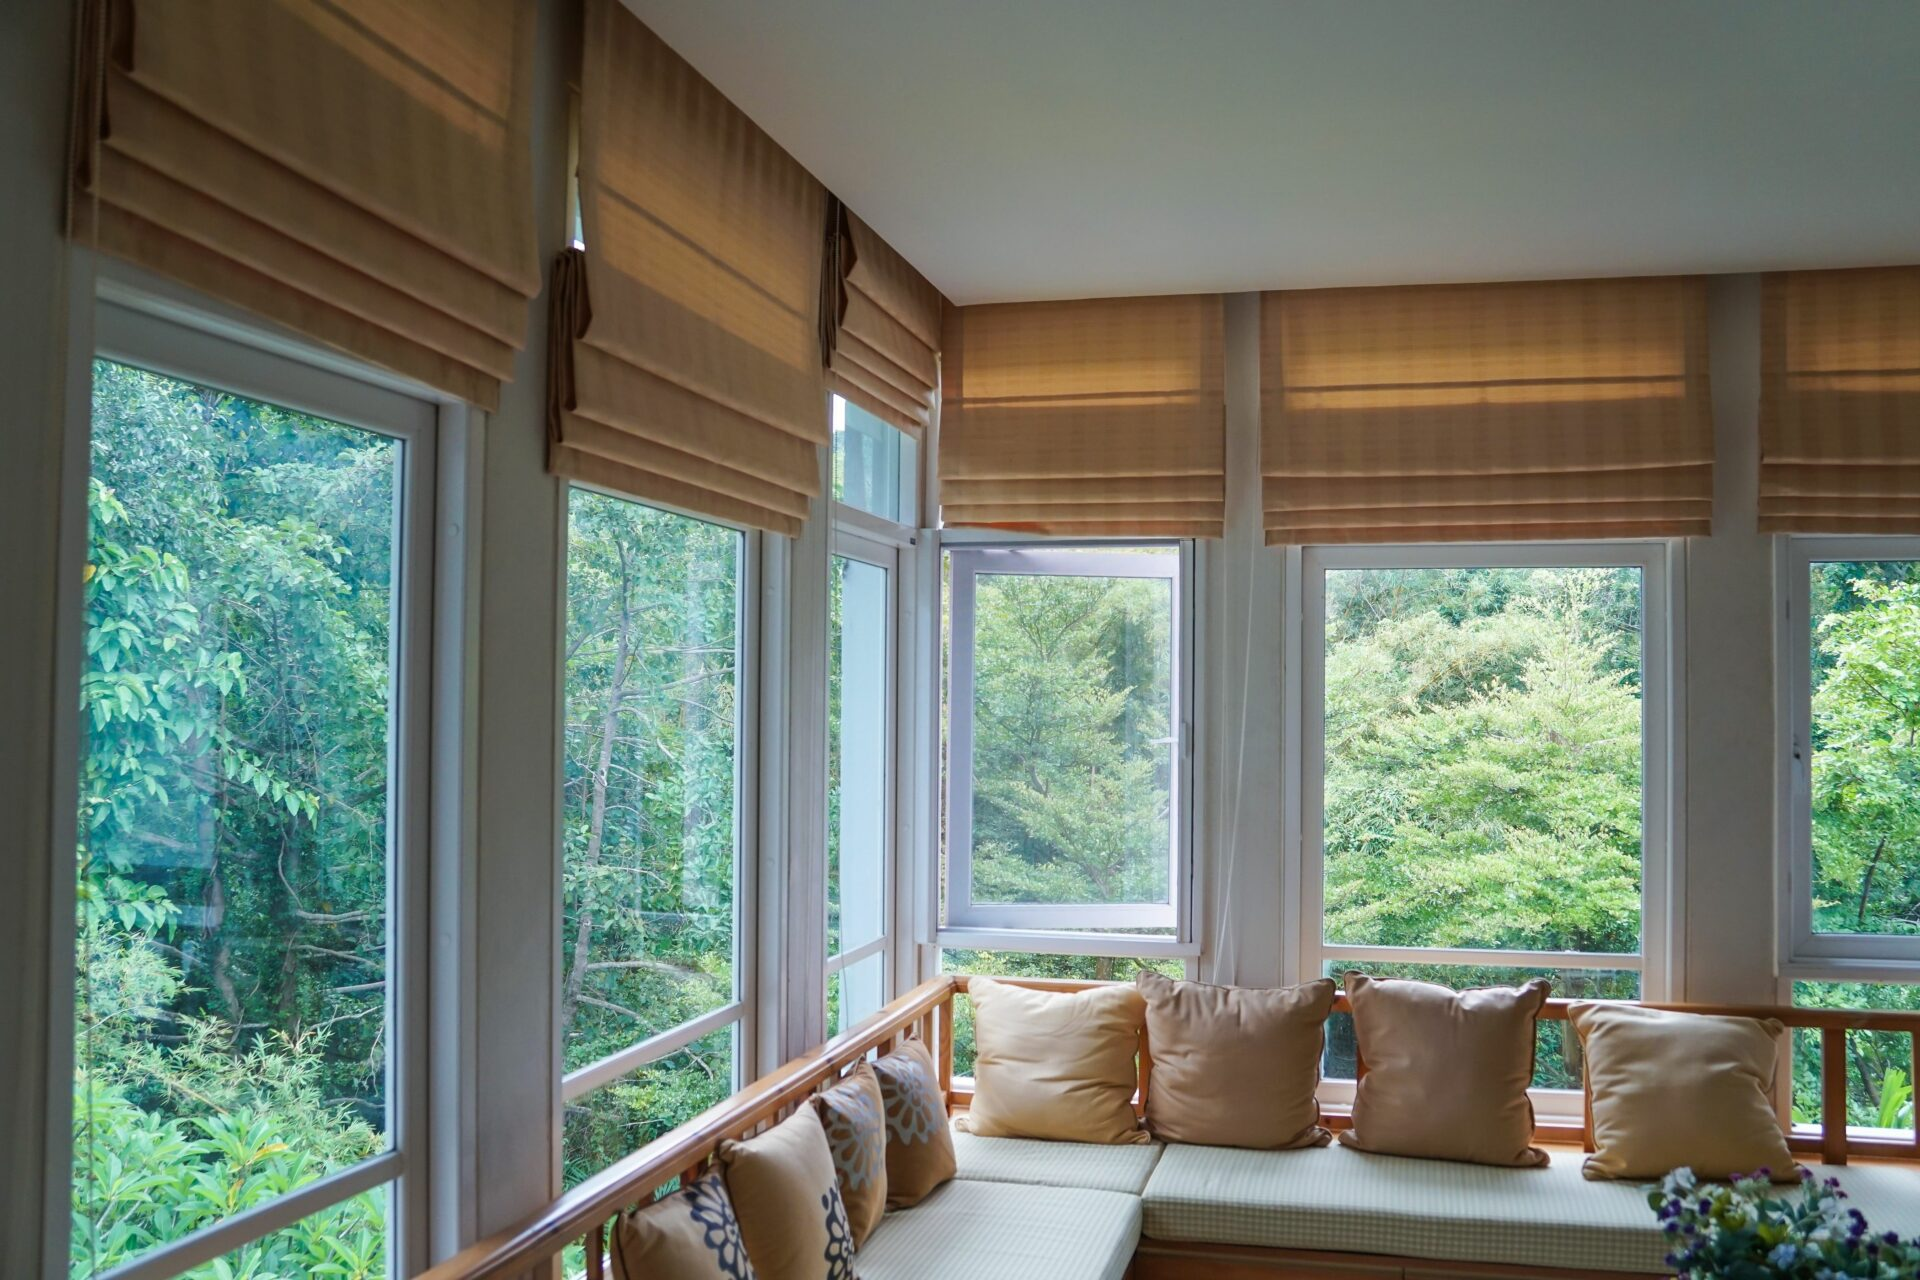 Warm, earthy color of Roman shades is iconic for Boho-inspired decoration